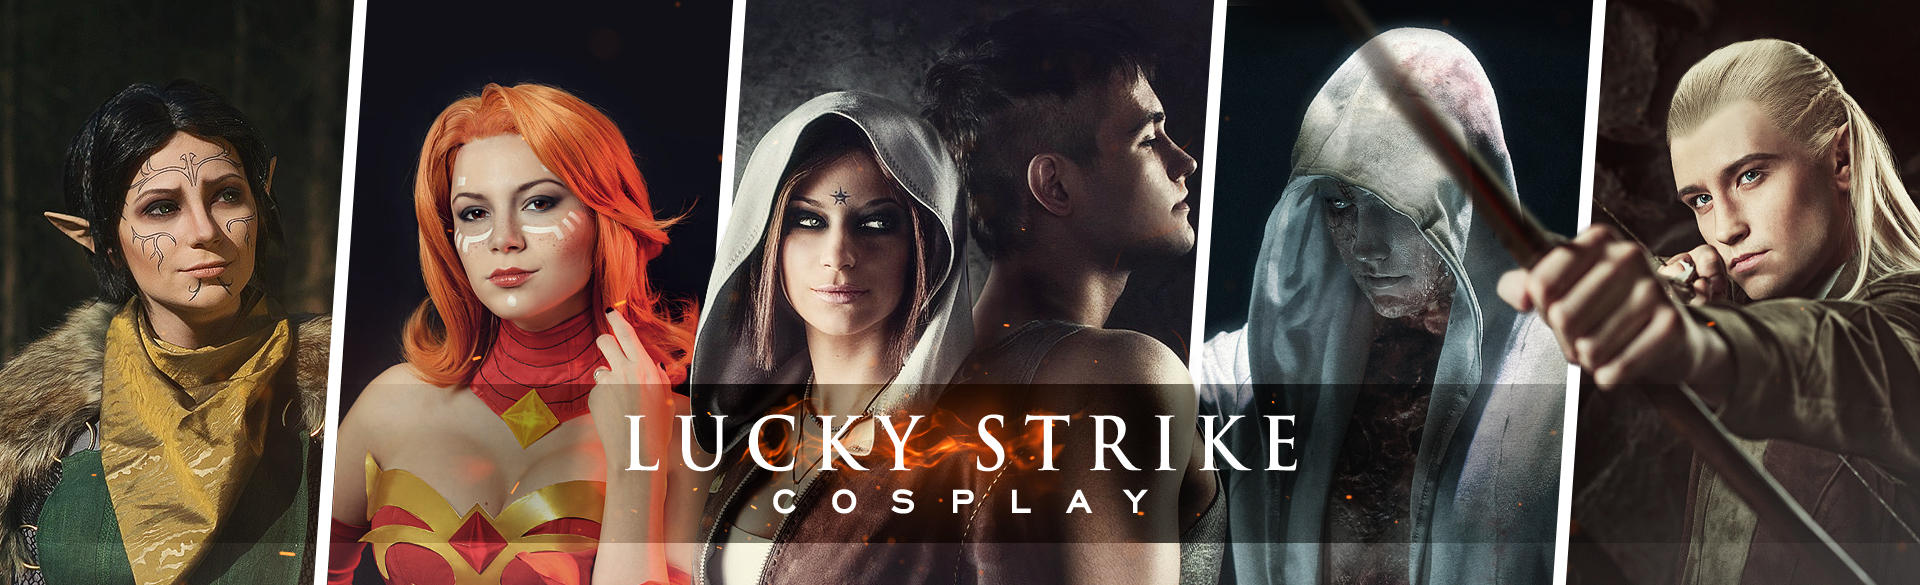 LuckyStrikeCosplay's Profile Picture